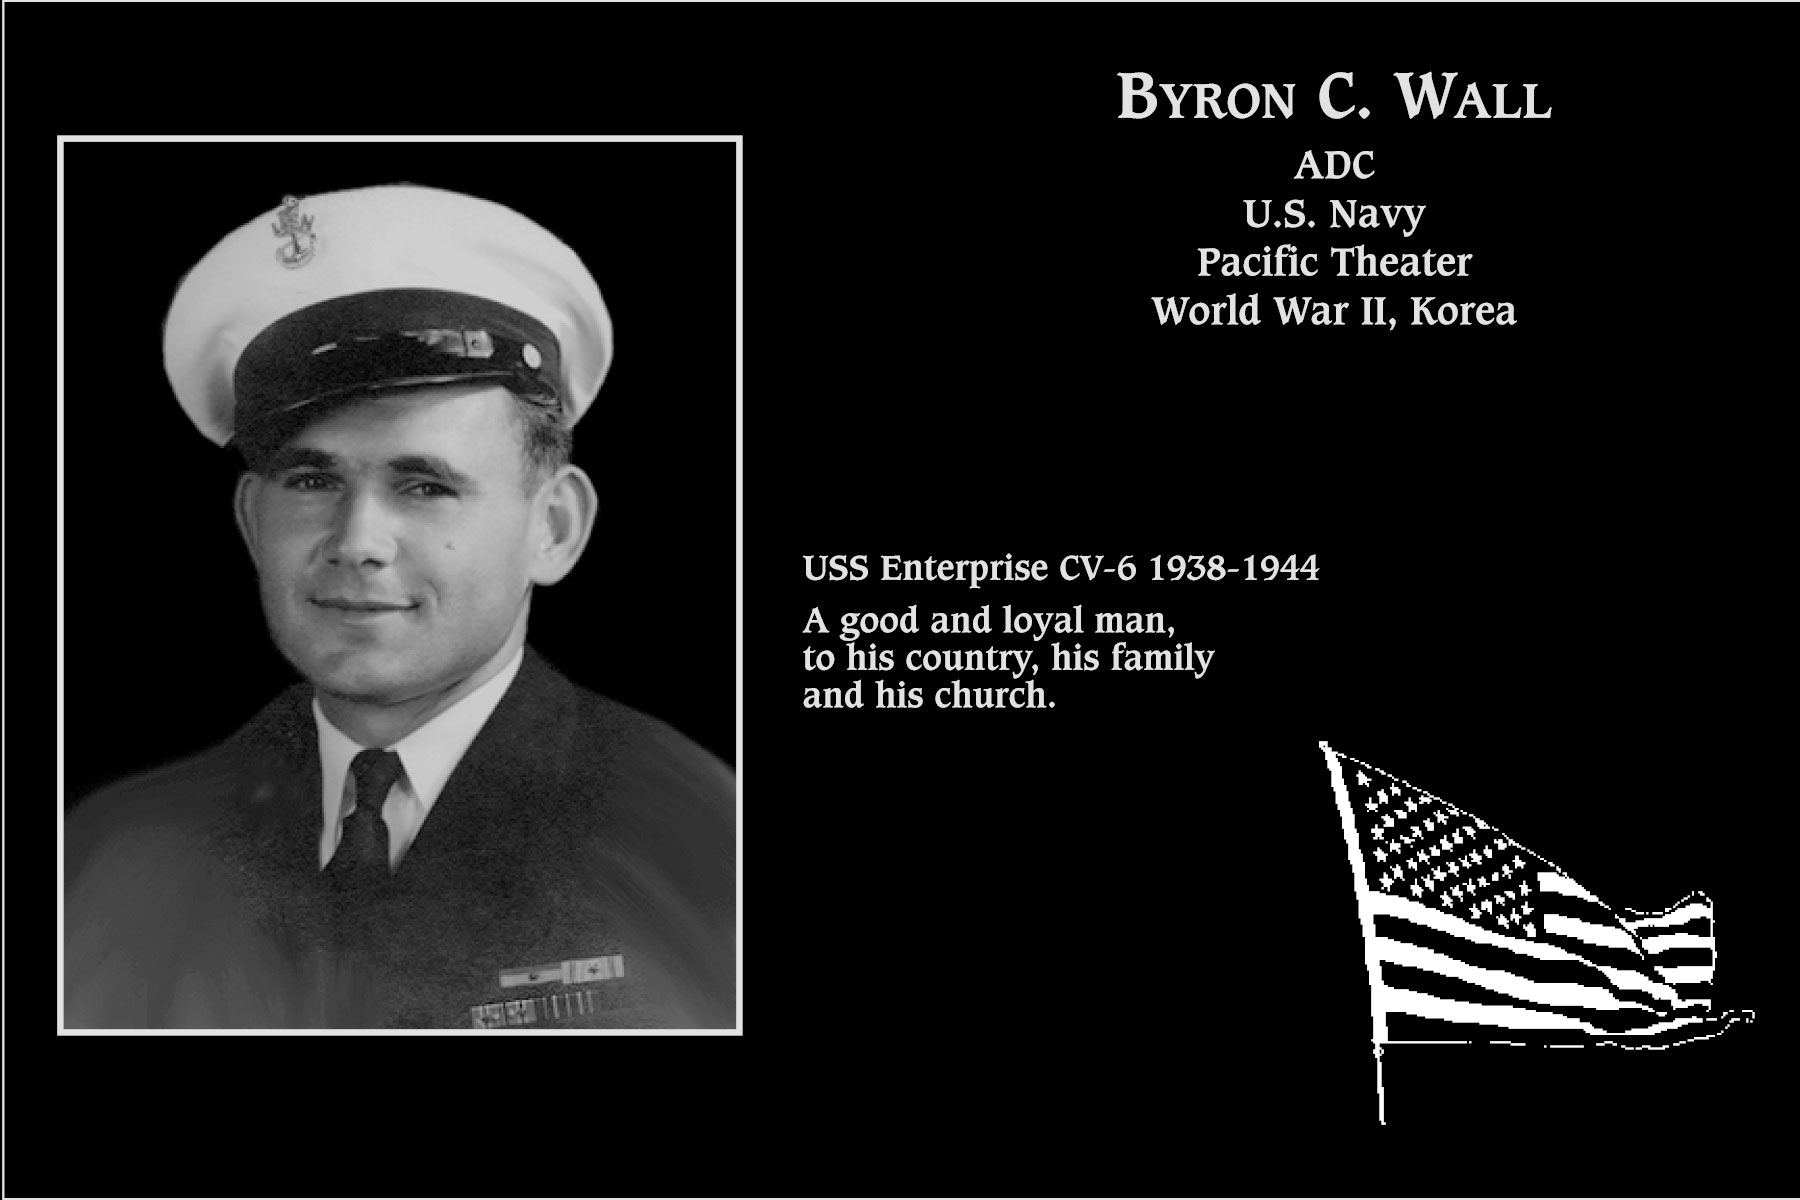 Byron C. Wall